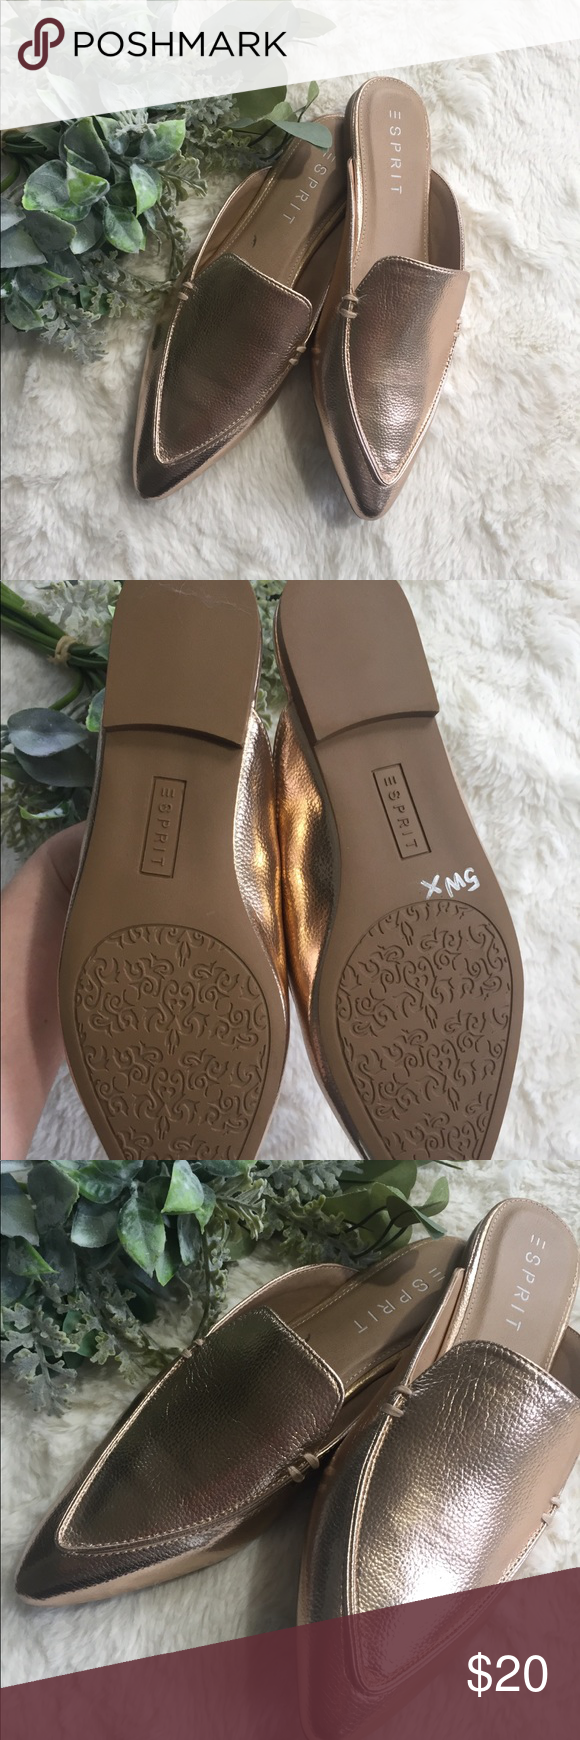 cc613901471994 Esprit Mia Rose Gold Mules New out of box Rose Gold Mules by Esprit Women s  size 8.5 From a smoke and pet free home Esprit Shoes Mules   Clogs